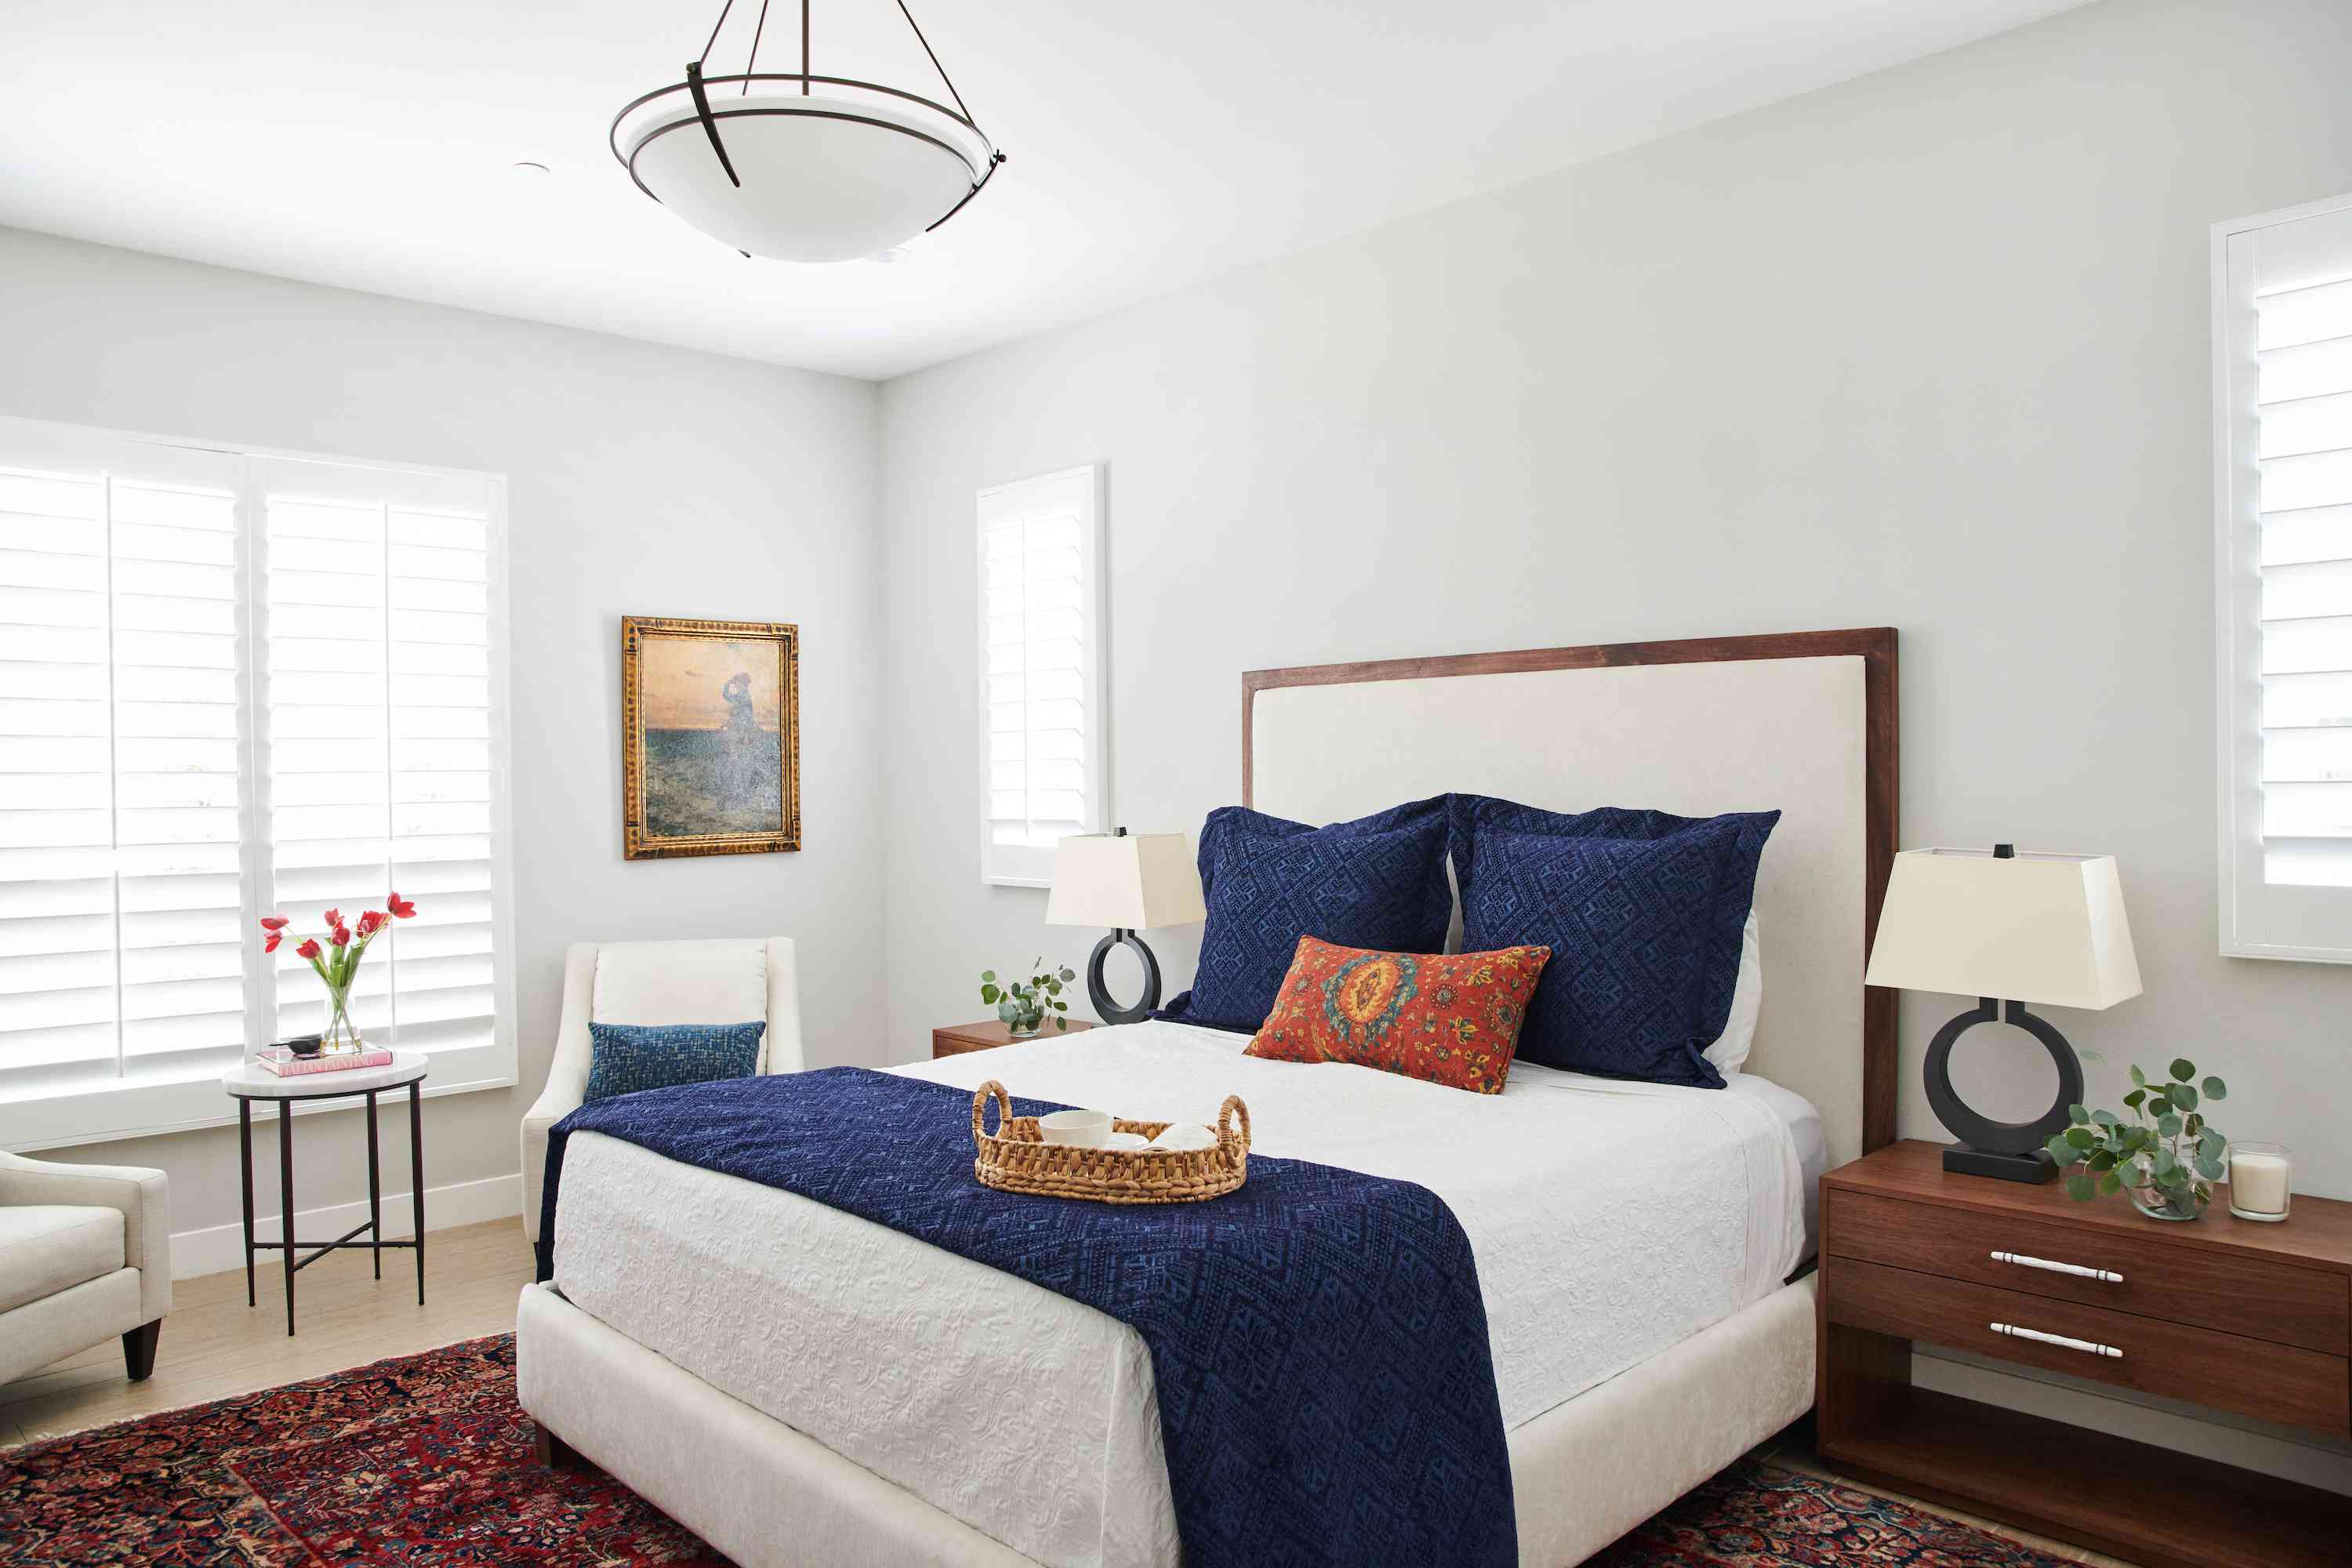 Primary bedroom with navy throw blanket on bed.